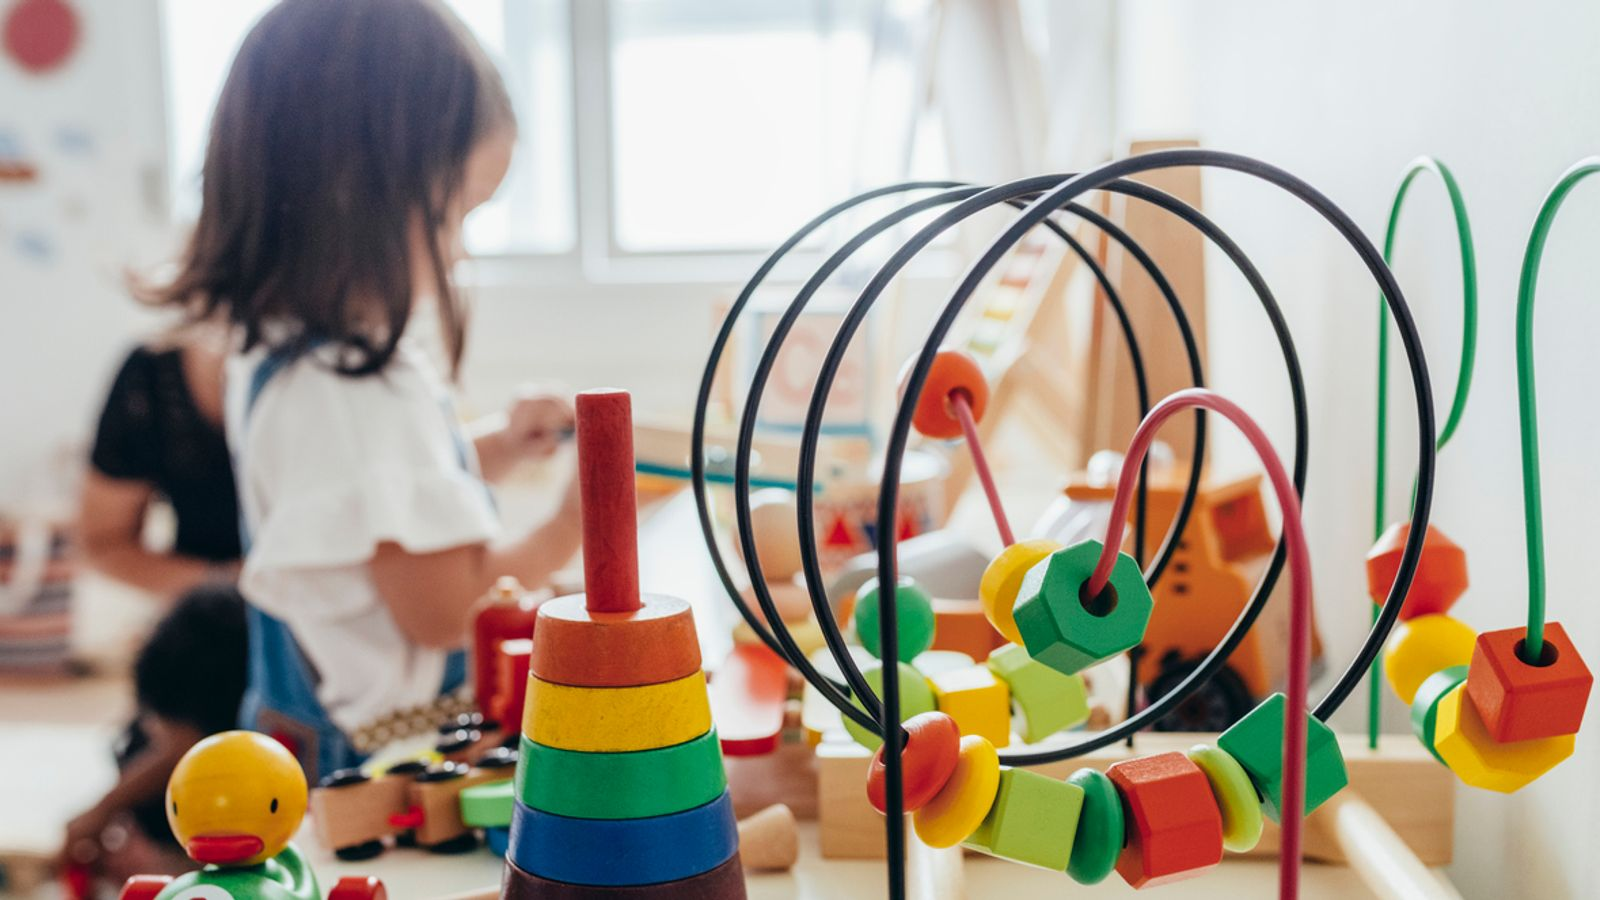 State-funded nurseries cutting services because of COVID funding crisis